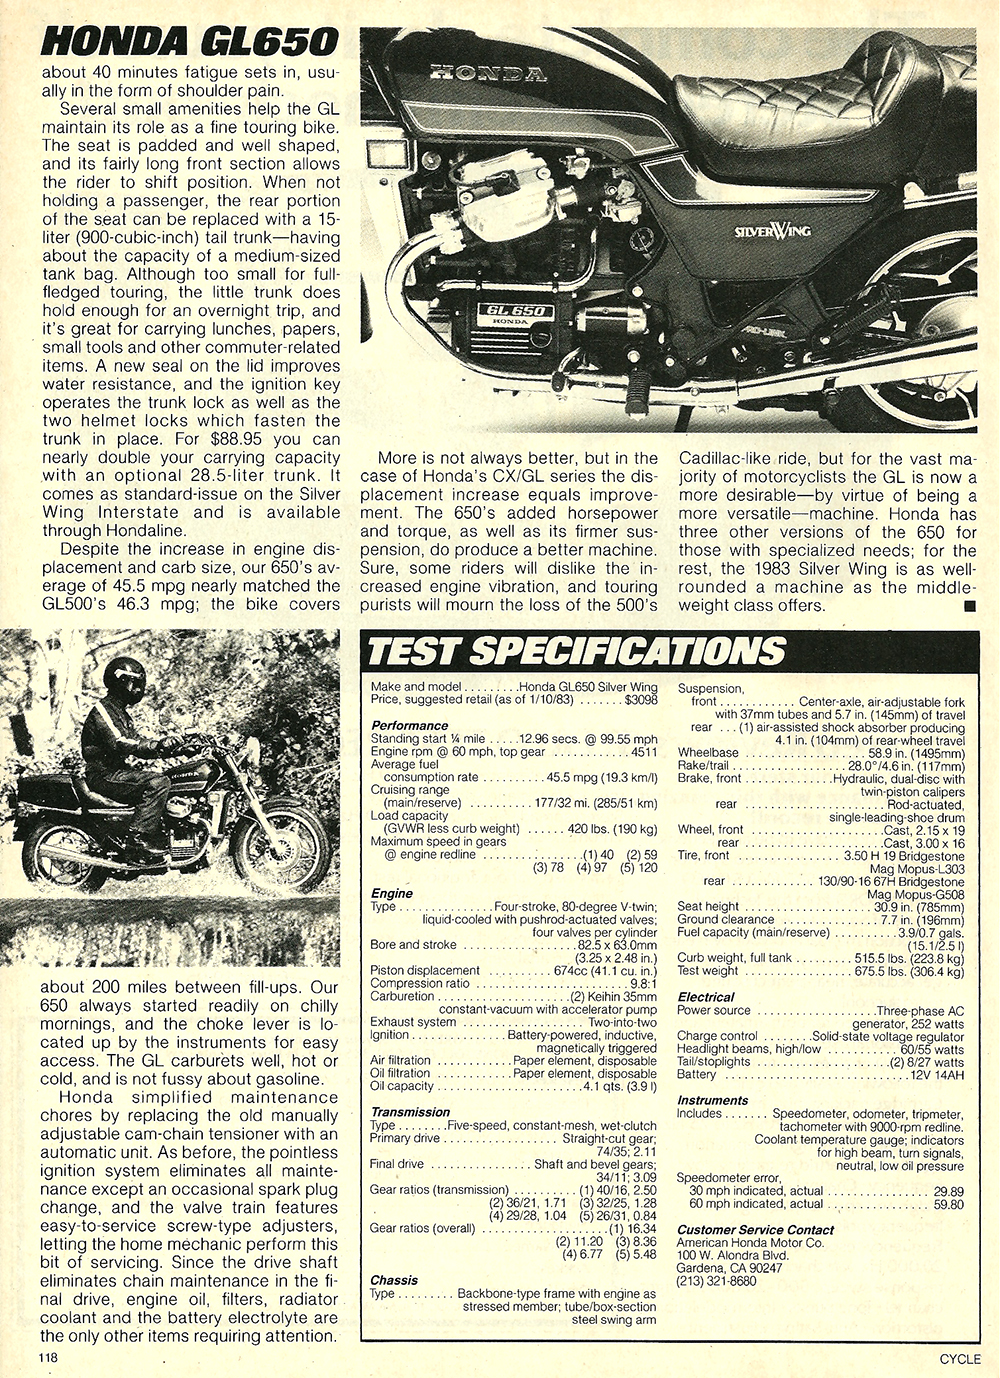 1983 Honda GL650 Silver Wing road test 7.jpg